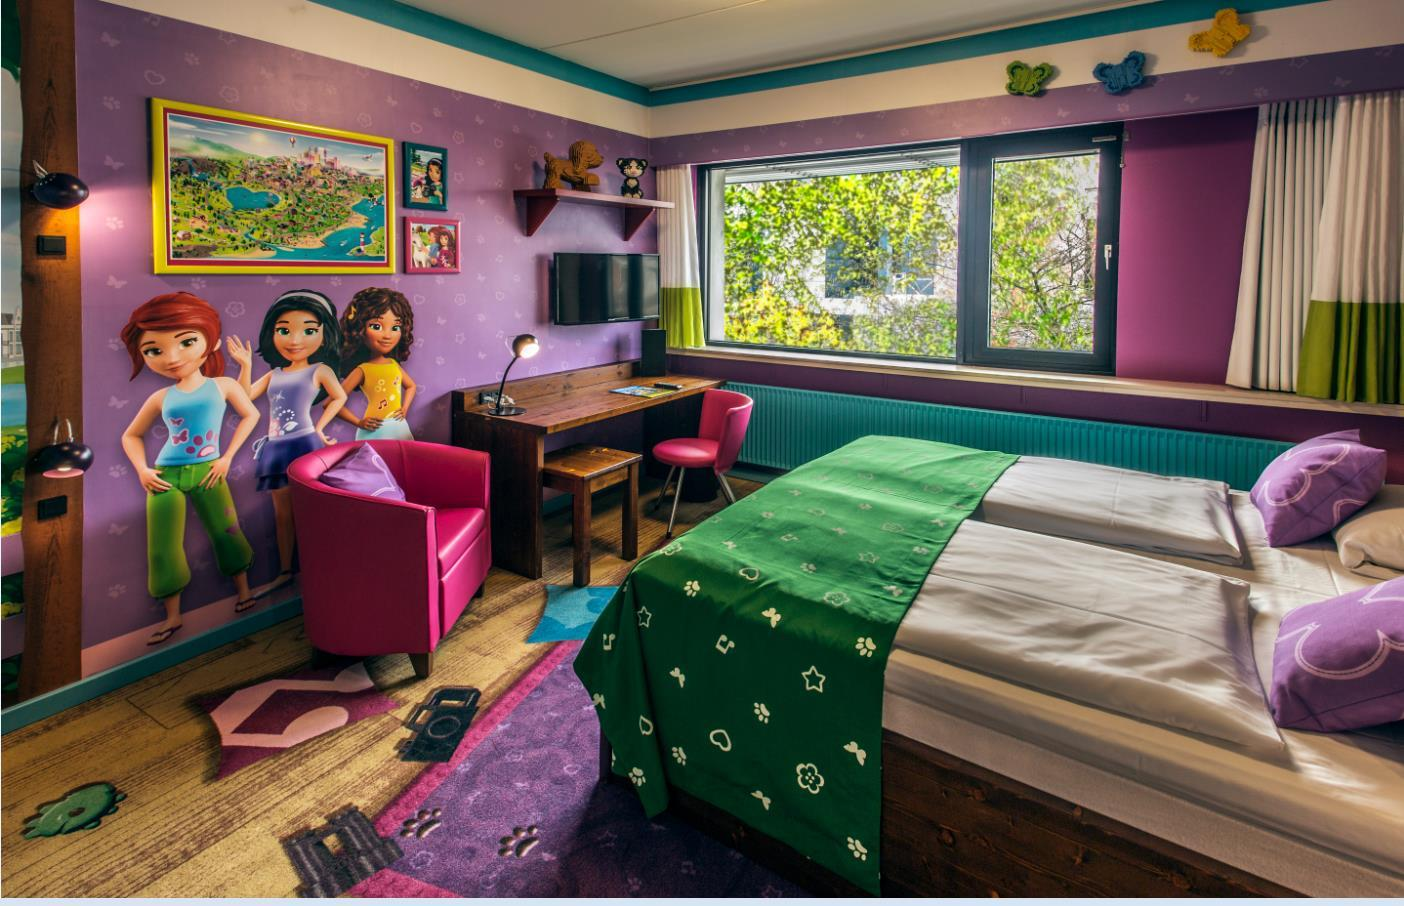 Hotel Legoland Accommodations Legoland 174 Holidays